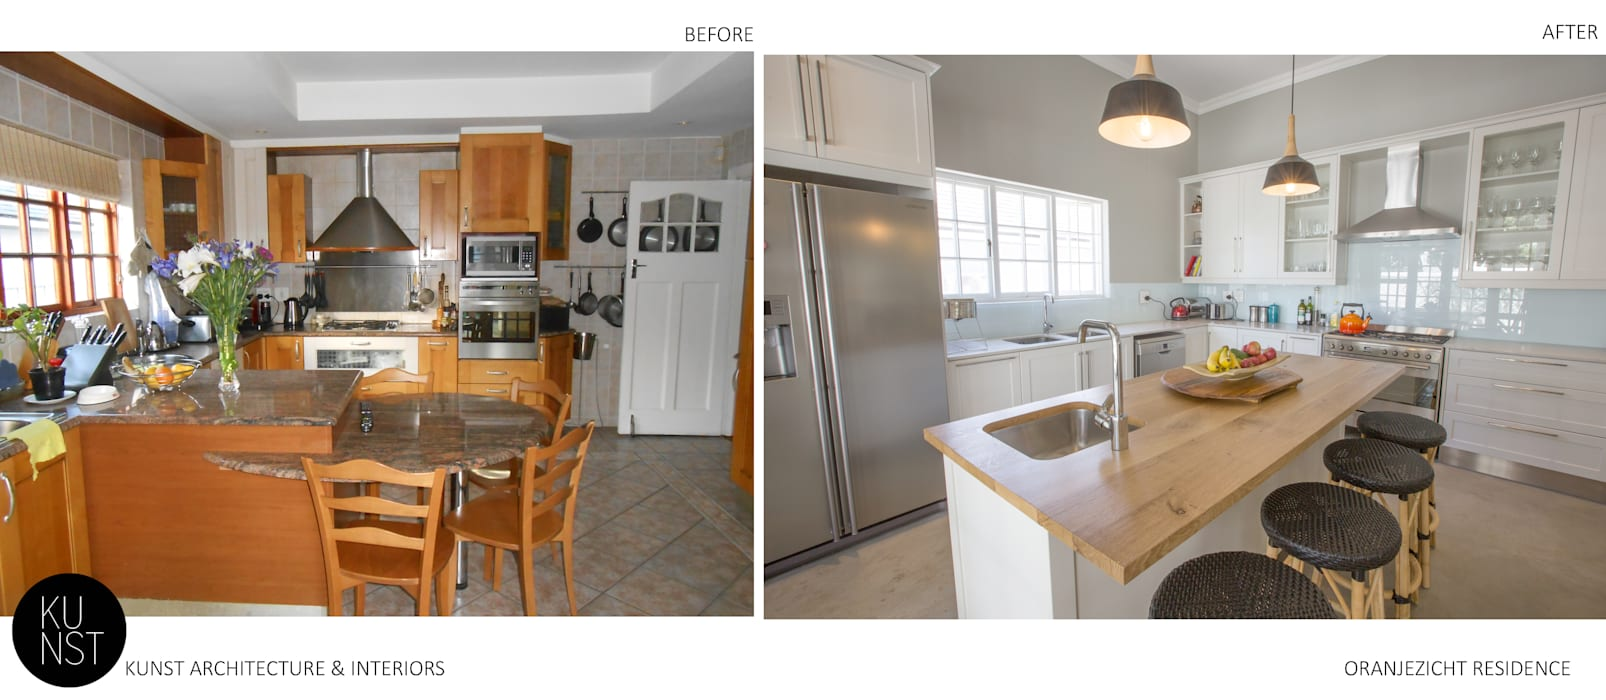 Before and After Photos _ Oranjezicht Residence Kunst Architecture & Interiors